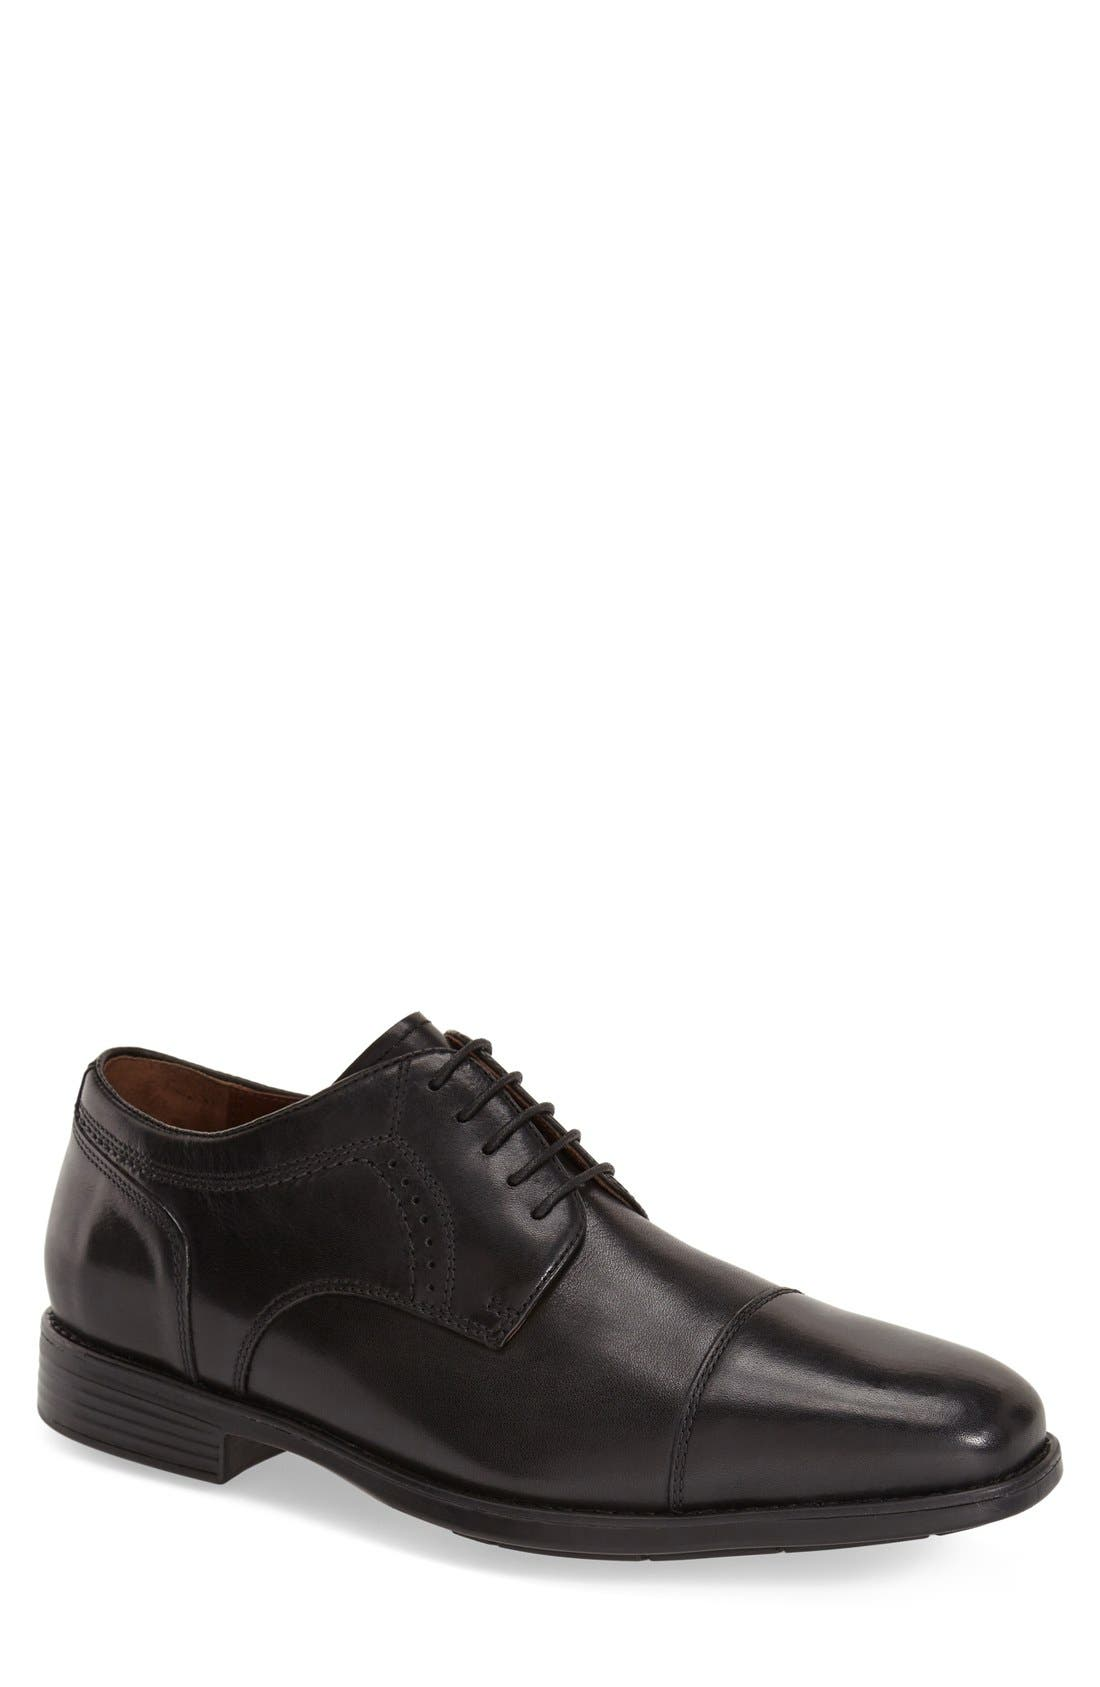 JOHNSTON & MURPHY 'Branning' Waterproof Cap Toe Derby